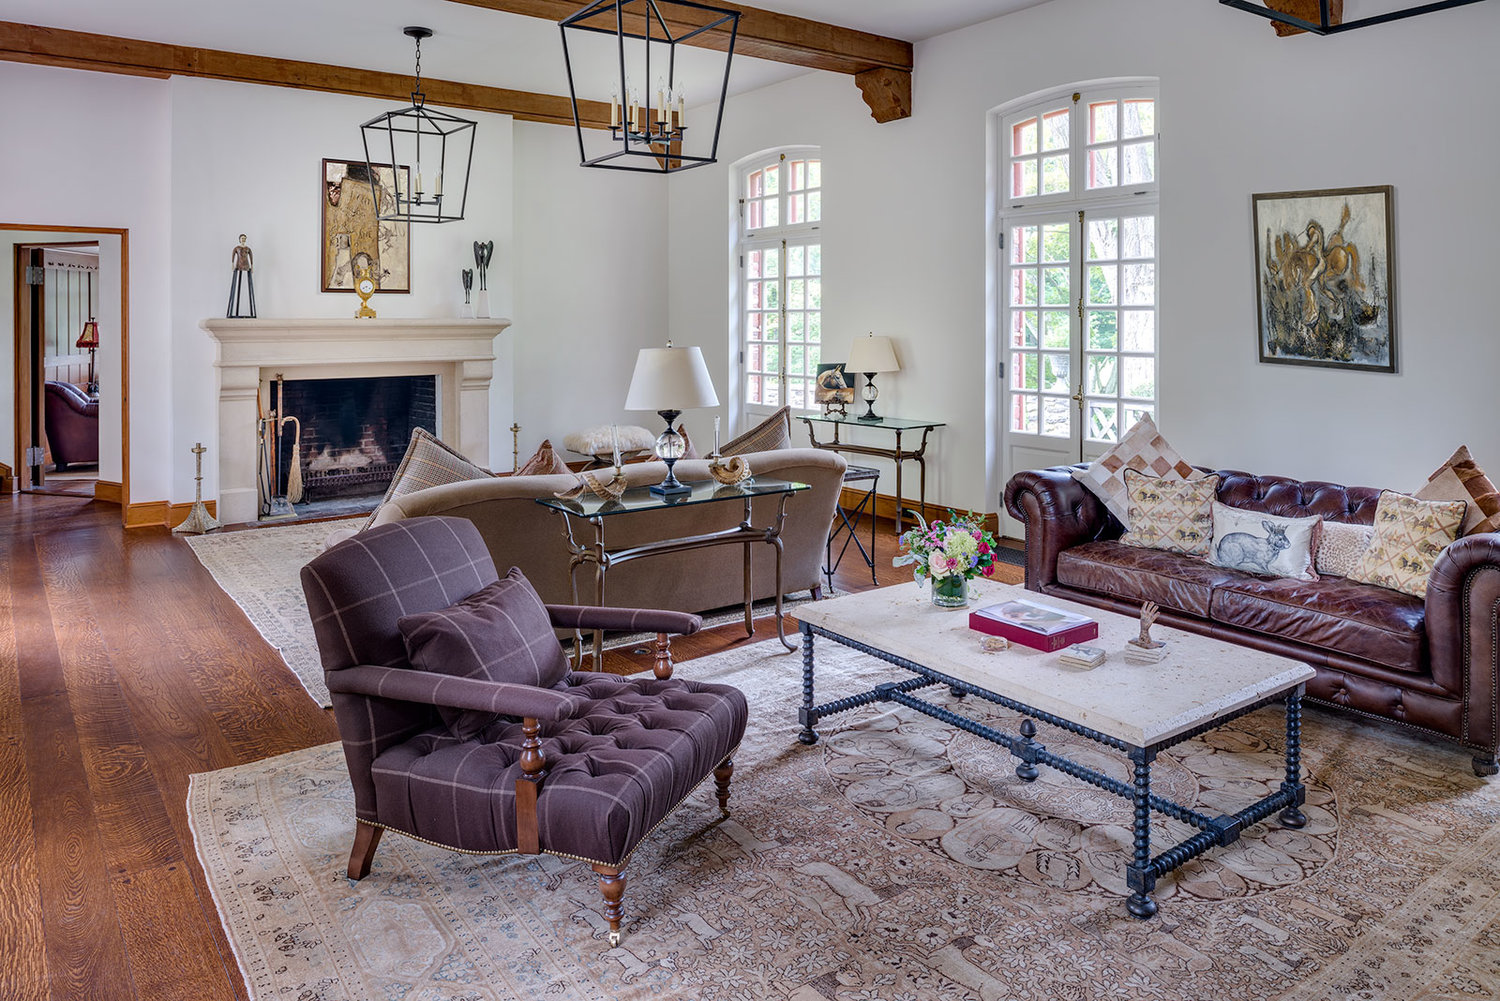 Living Room Decor Trends To Follow In 2018: 7 Interior Decor Trends For 2018 That Will Make You Go WOW